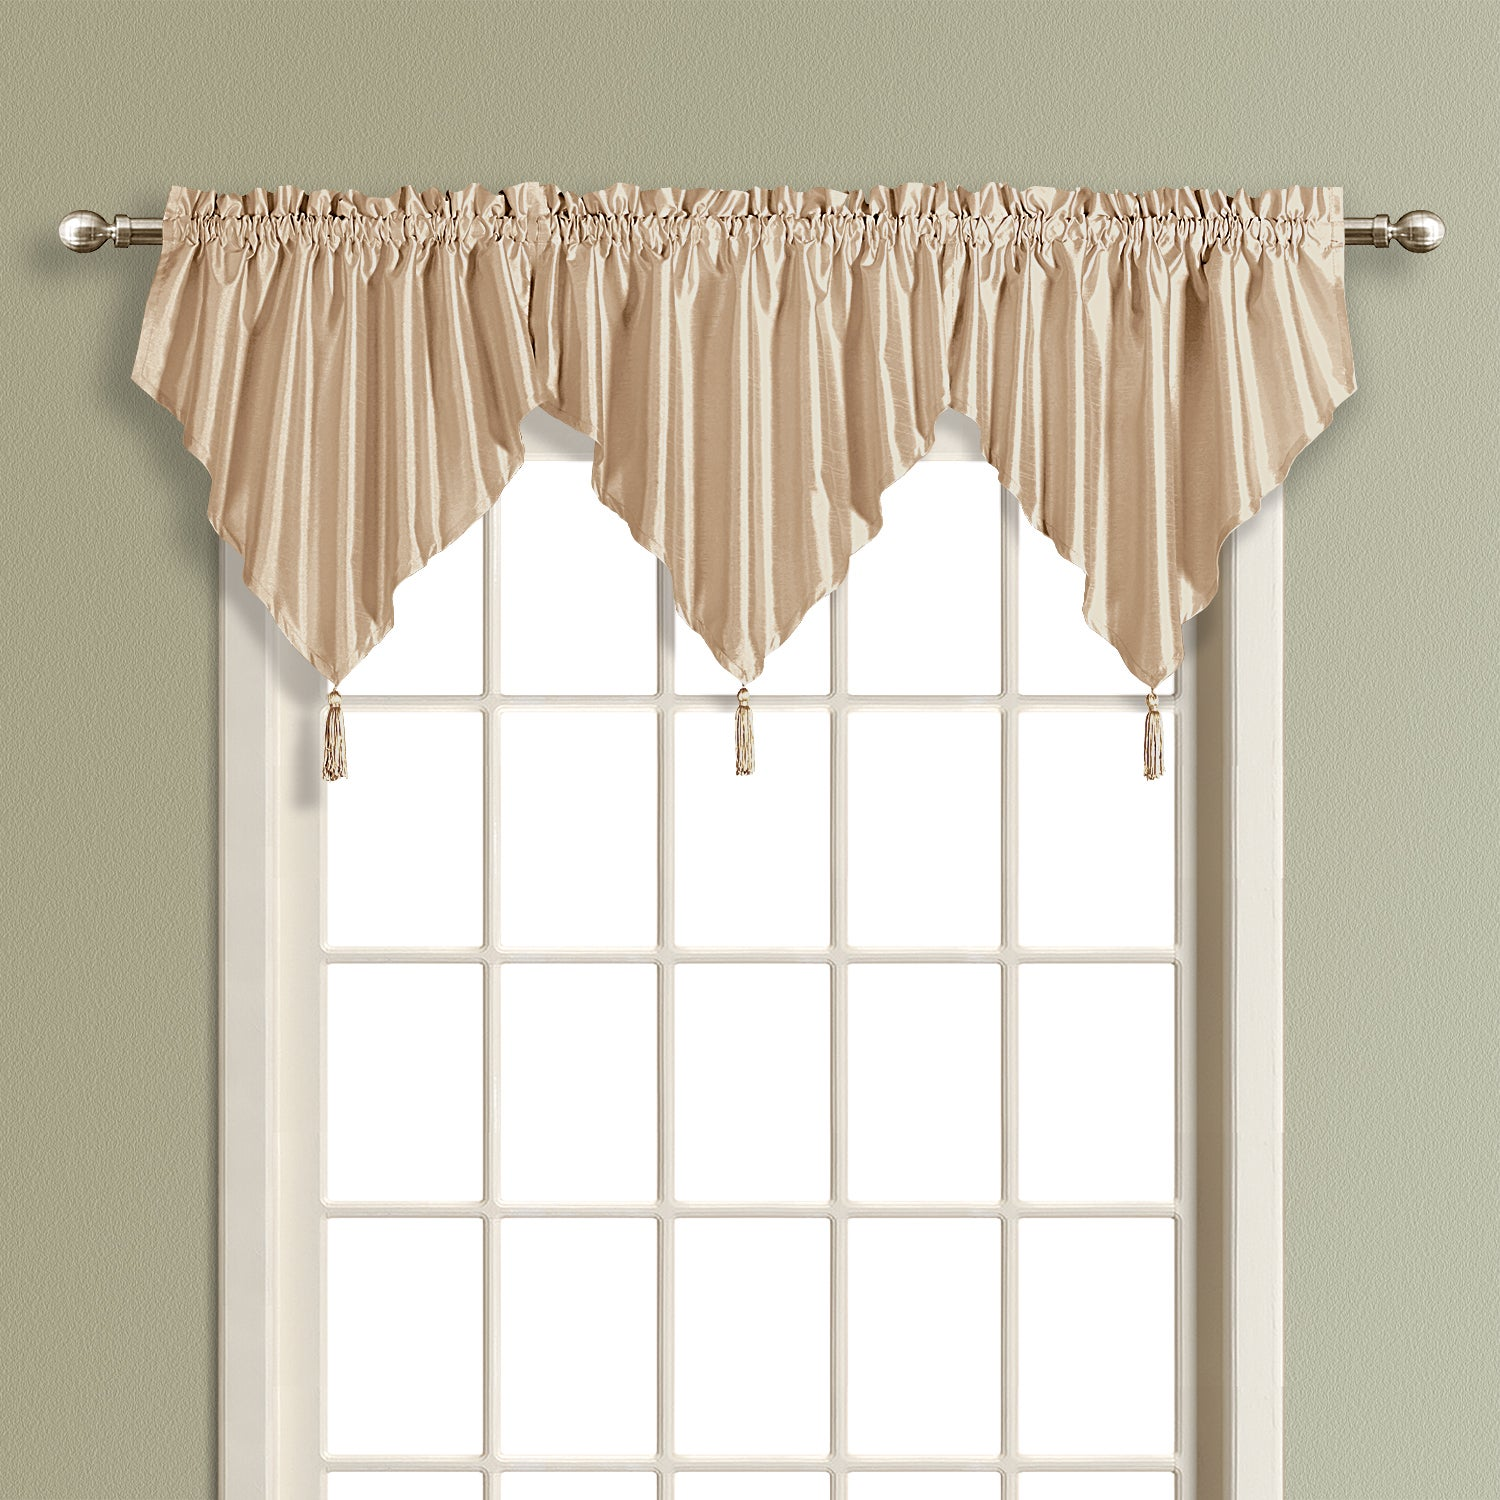 holders hang scarf to s org how country uk ideas curtain curtains decorating ascot rings valance